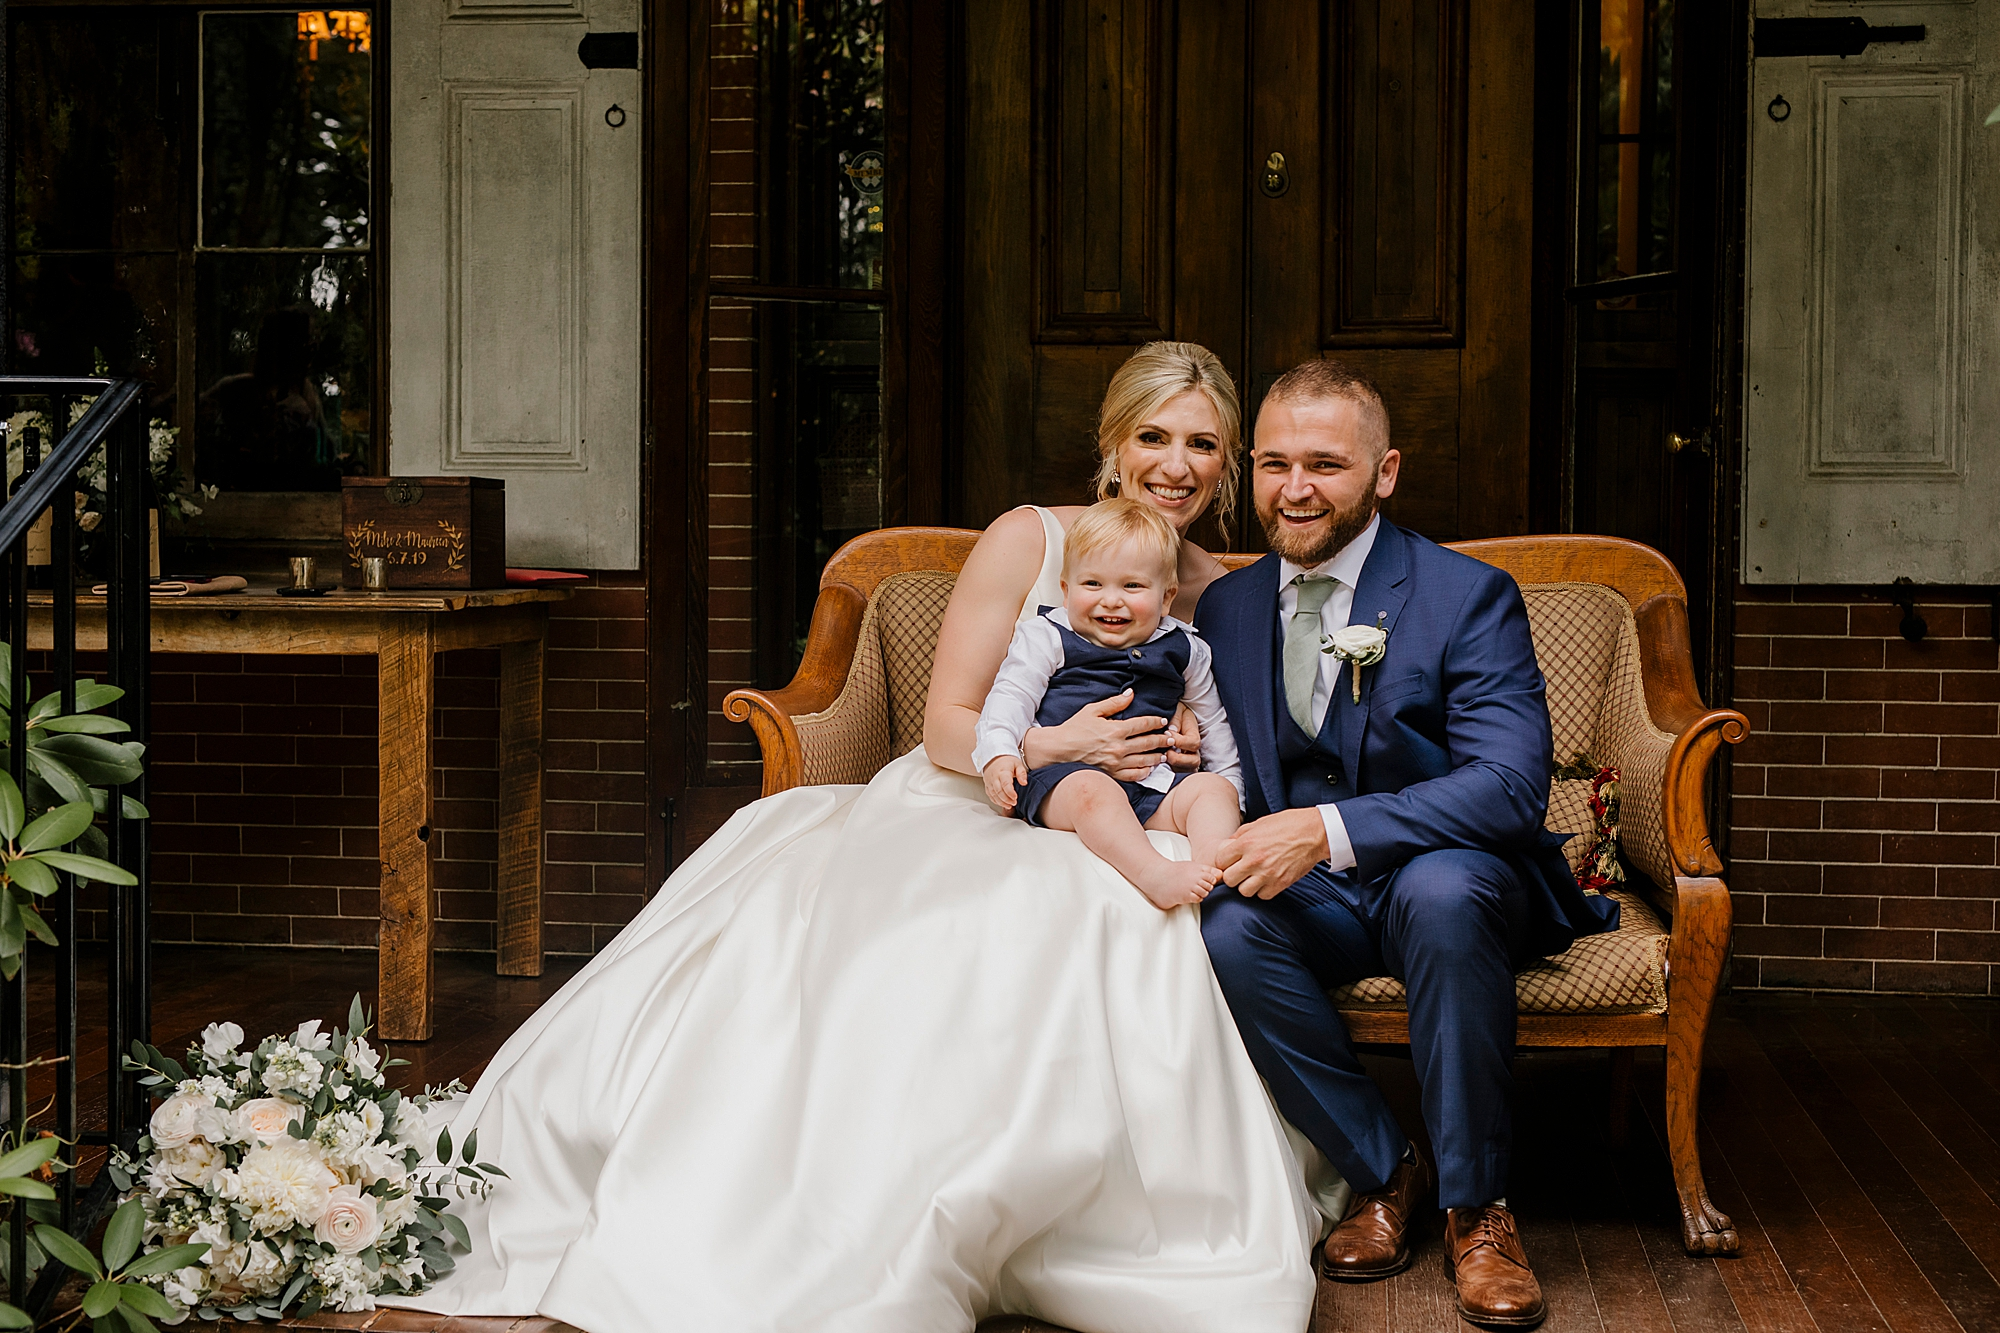 Love_by_Joe_Mac_West_Chester_Wedding_Faunbrook_Bed_and_Breakfast_Photography_0101.jpg